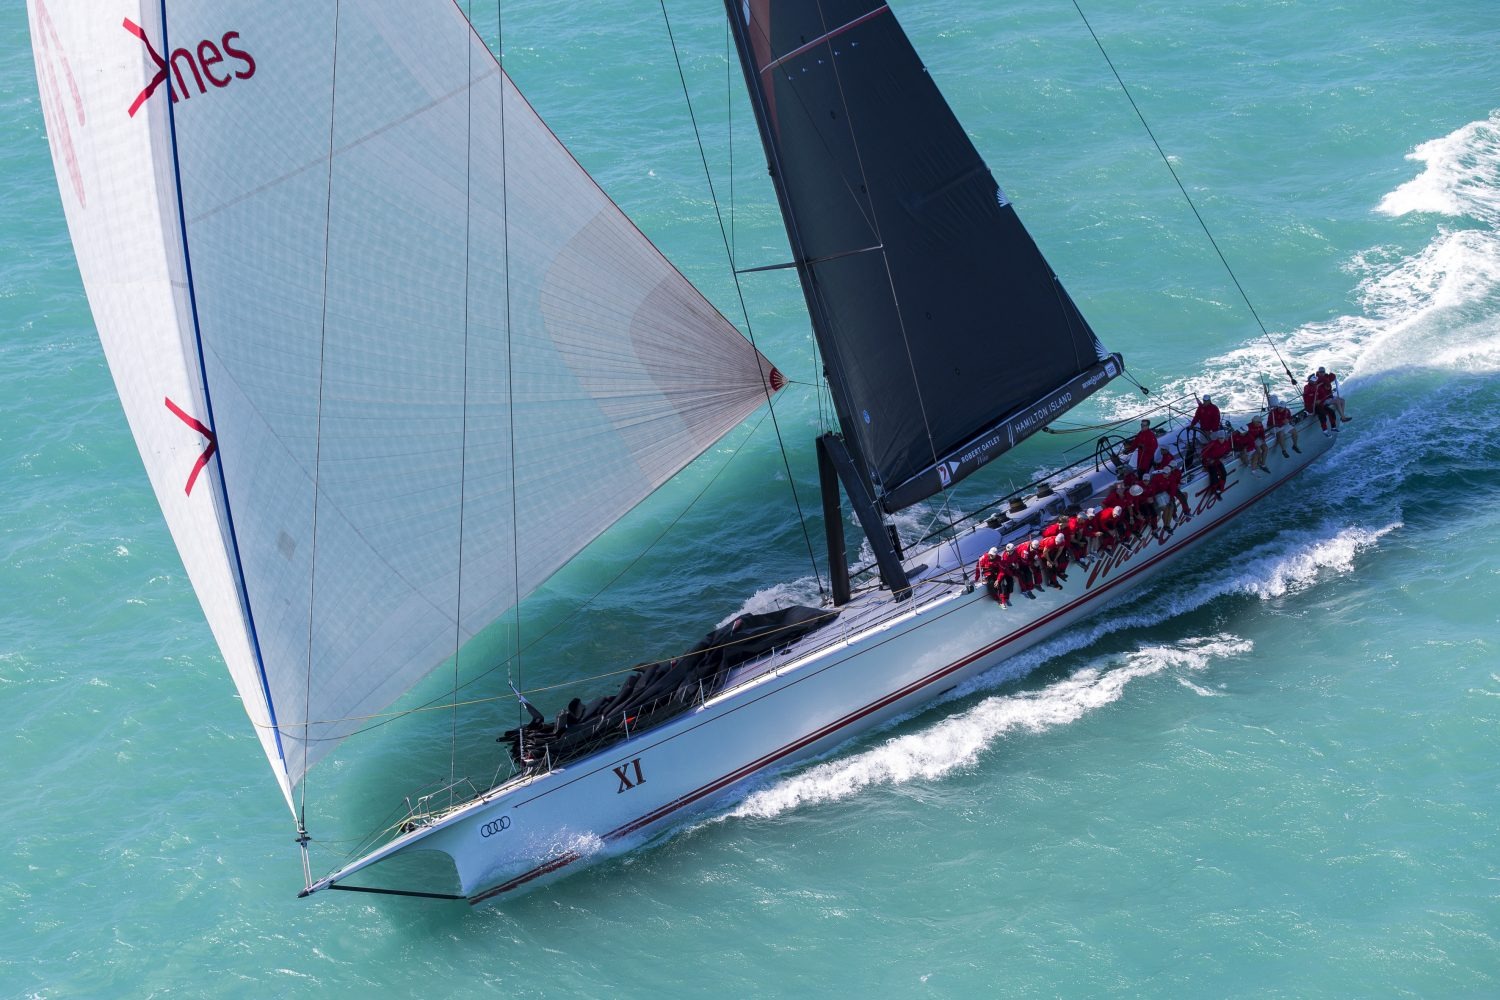 Wild Oats XI off and racing